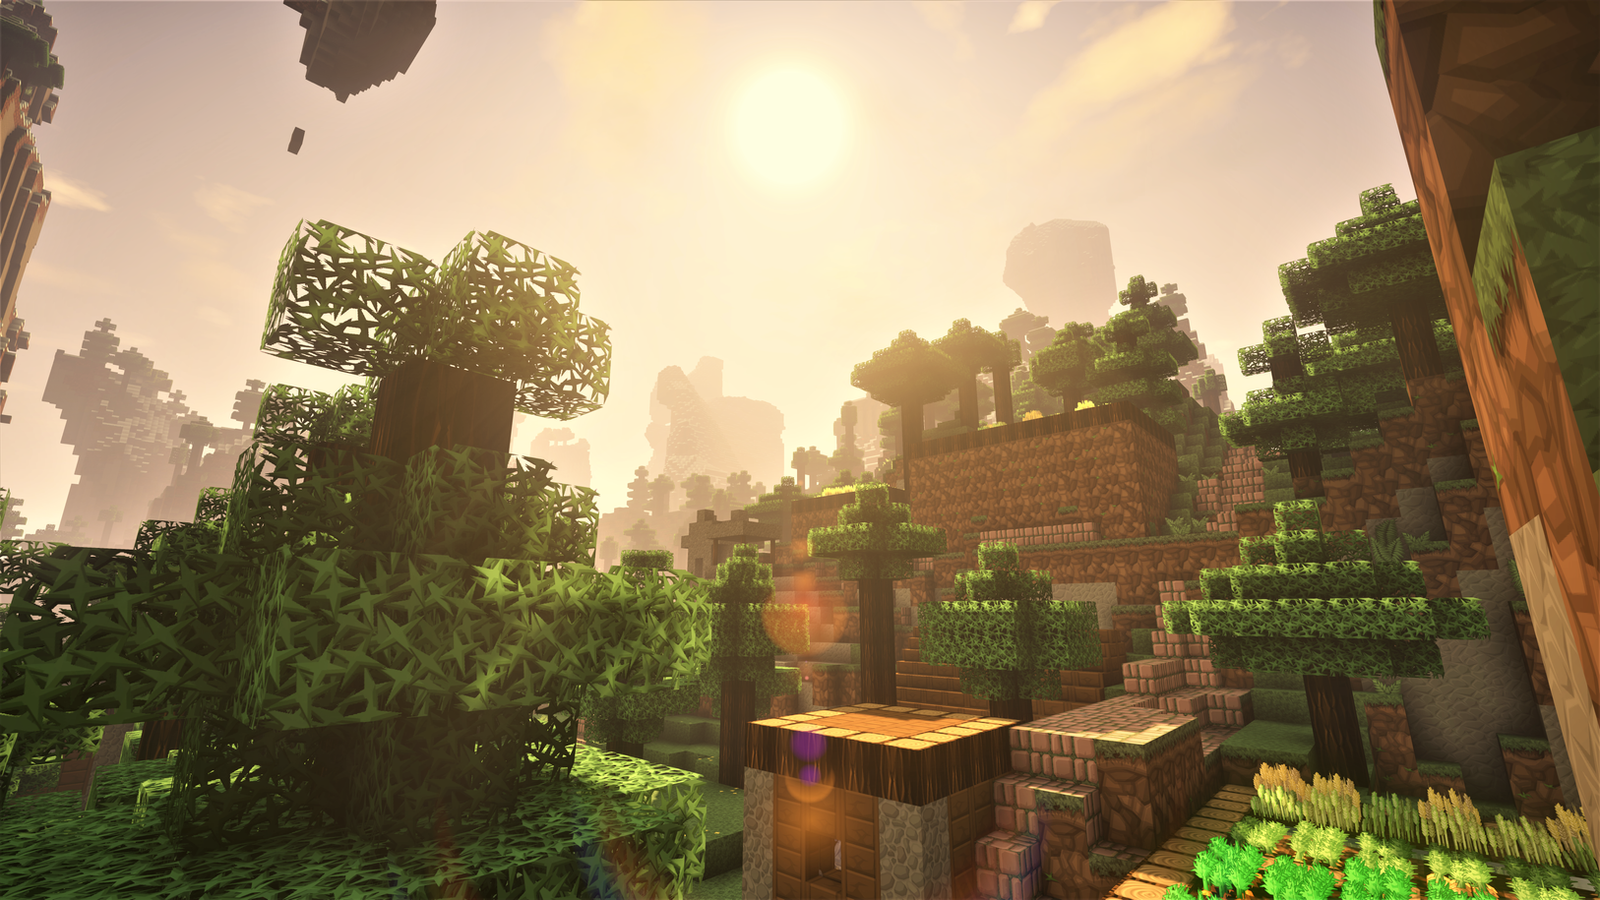 Hd Minecraft Village Wallpaper